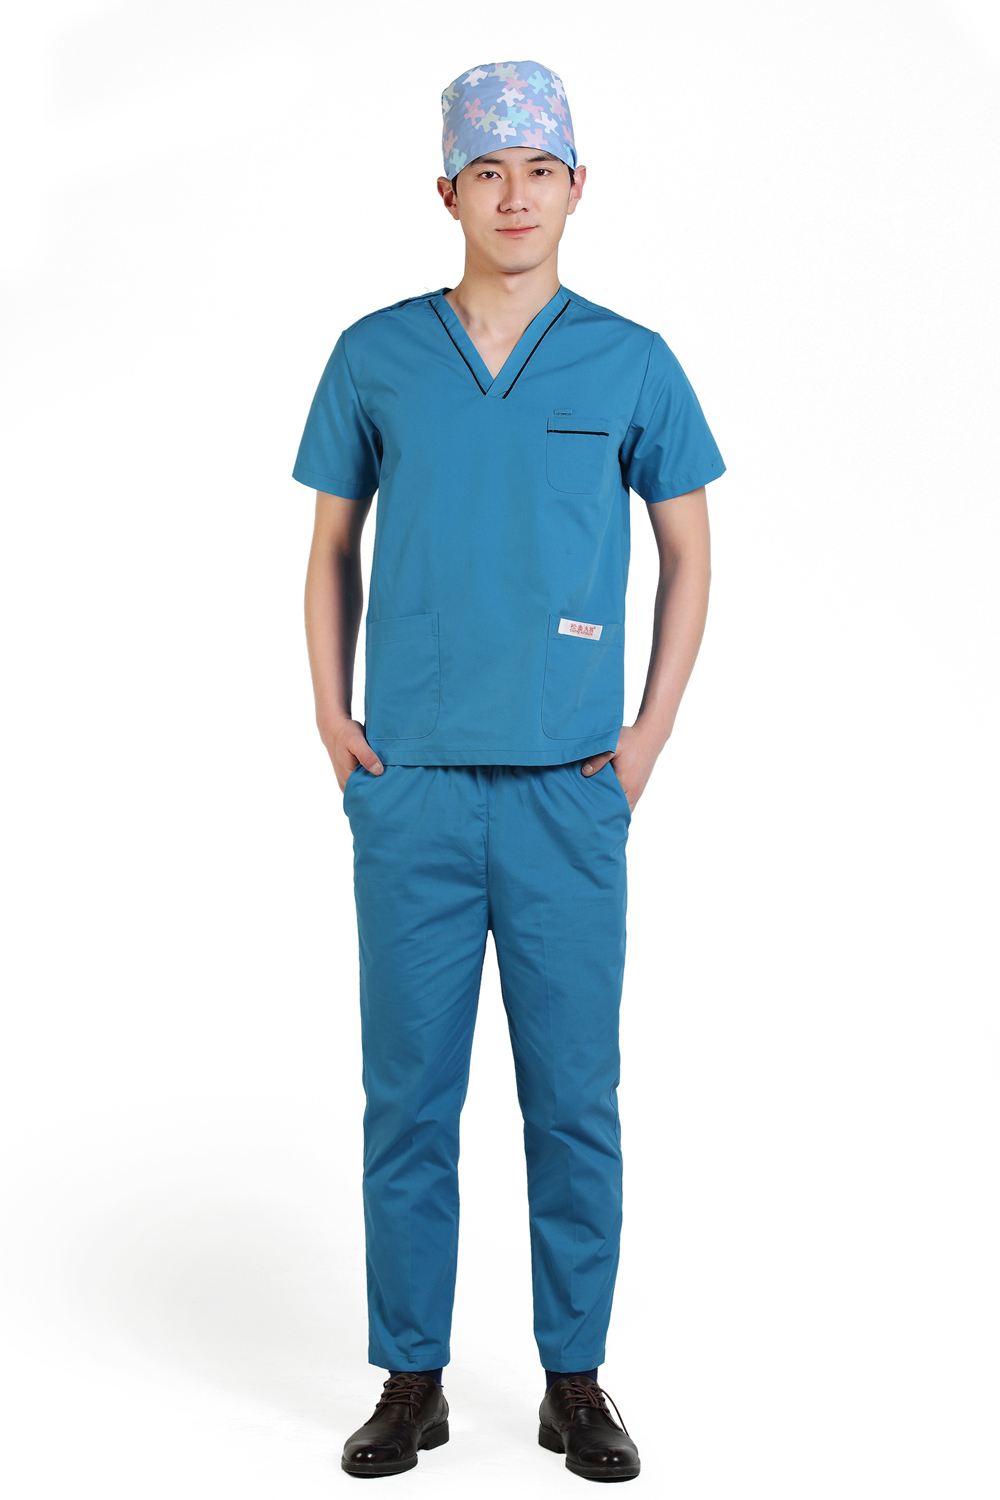 2015 OEM uniformes hospital scrub sets hospital workwear medical scrub suit hot sale(China (Mainland))